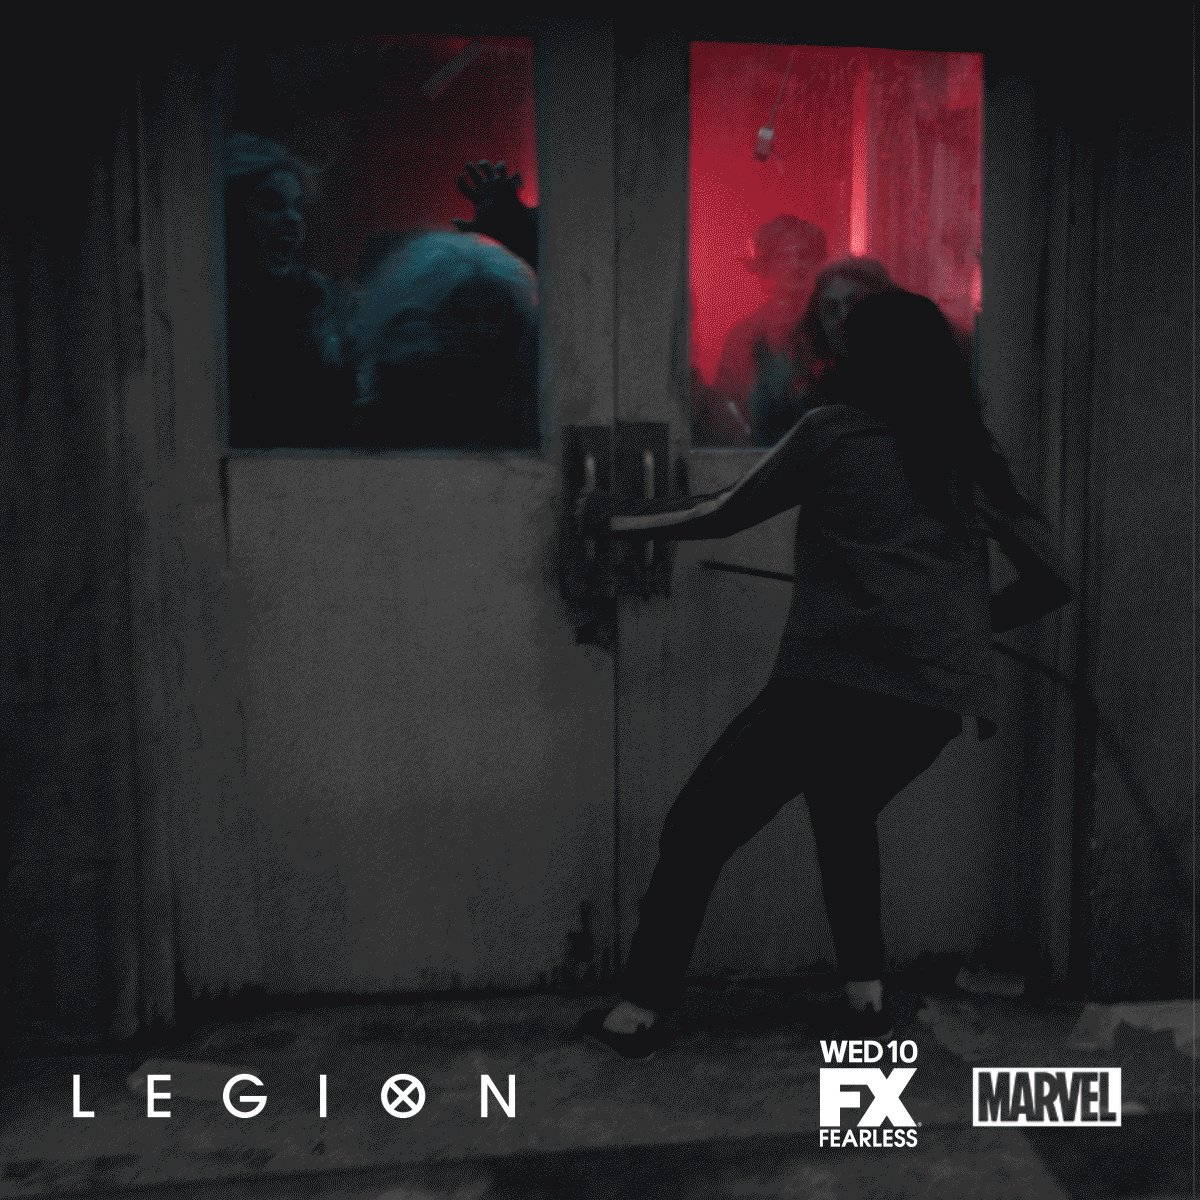 Keep the demons in your head at bay. #LegionFX https://t.co/2HThopGqxd